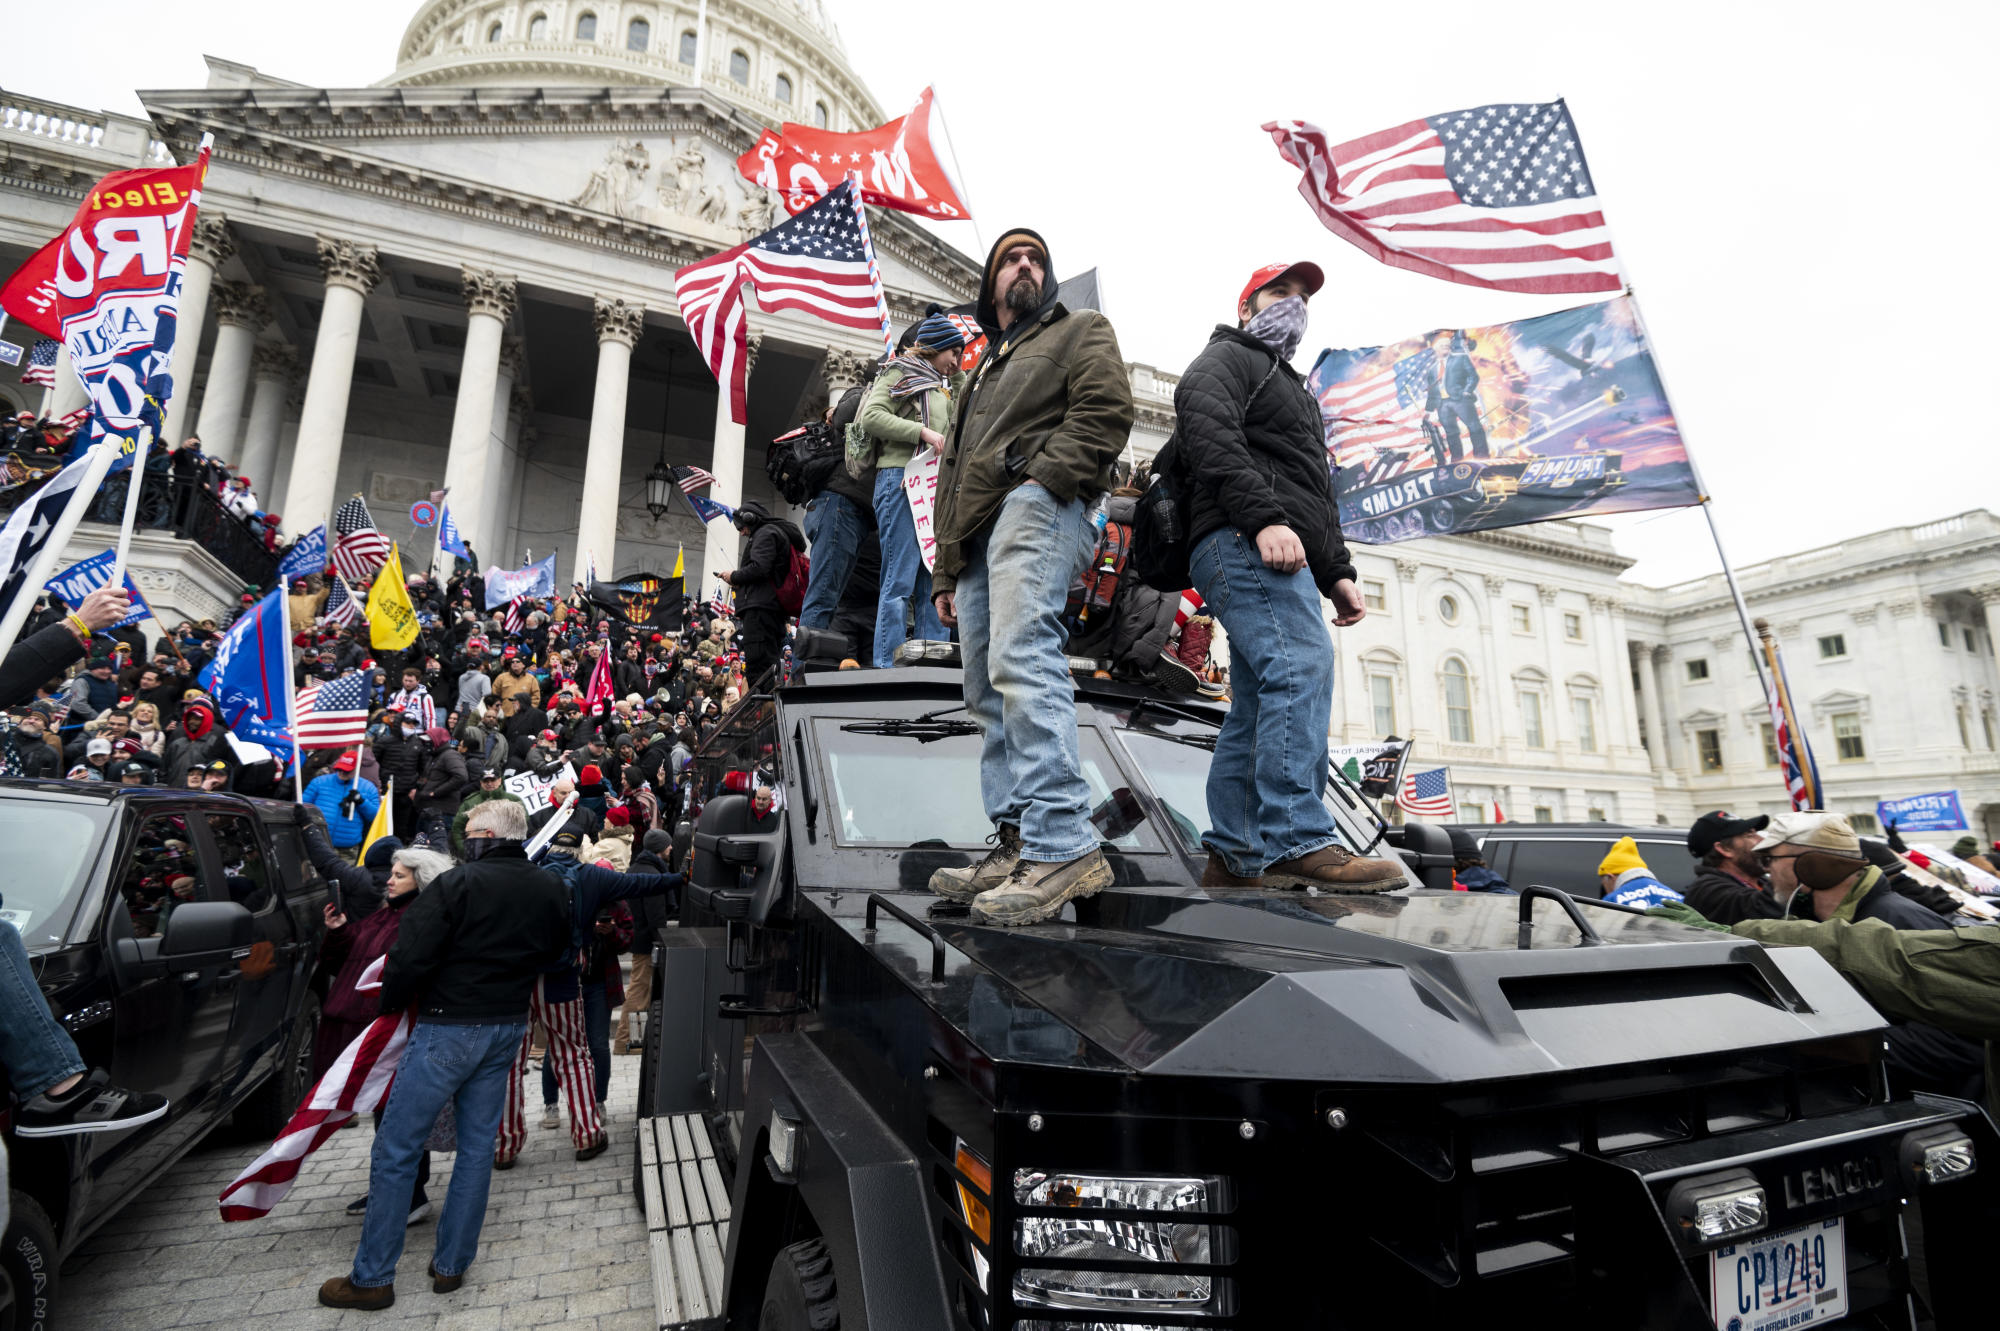 Trump supporters storm U.S. Capitol, clash with police - cover